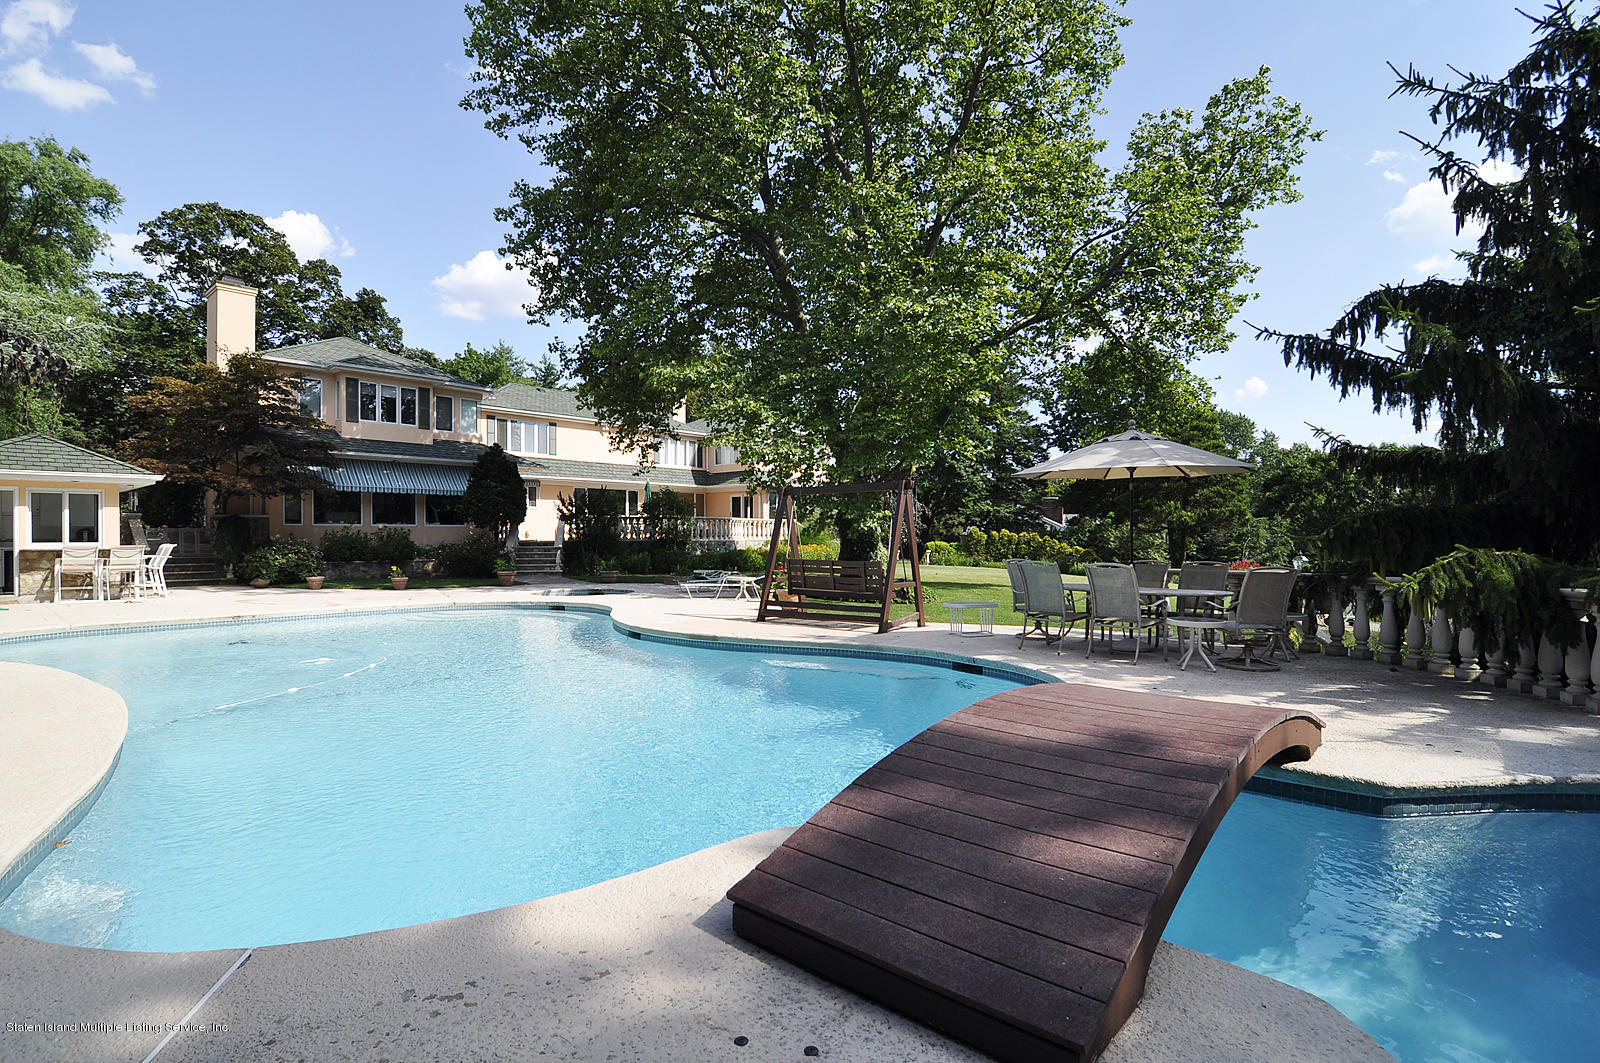 Single Family - Detached 738 Todt Hill Road  Staten Island, NY 10301, MLS-1127956-19